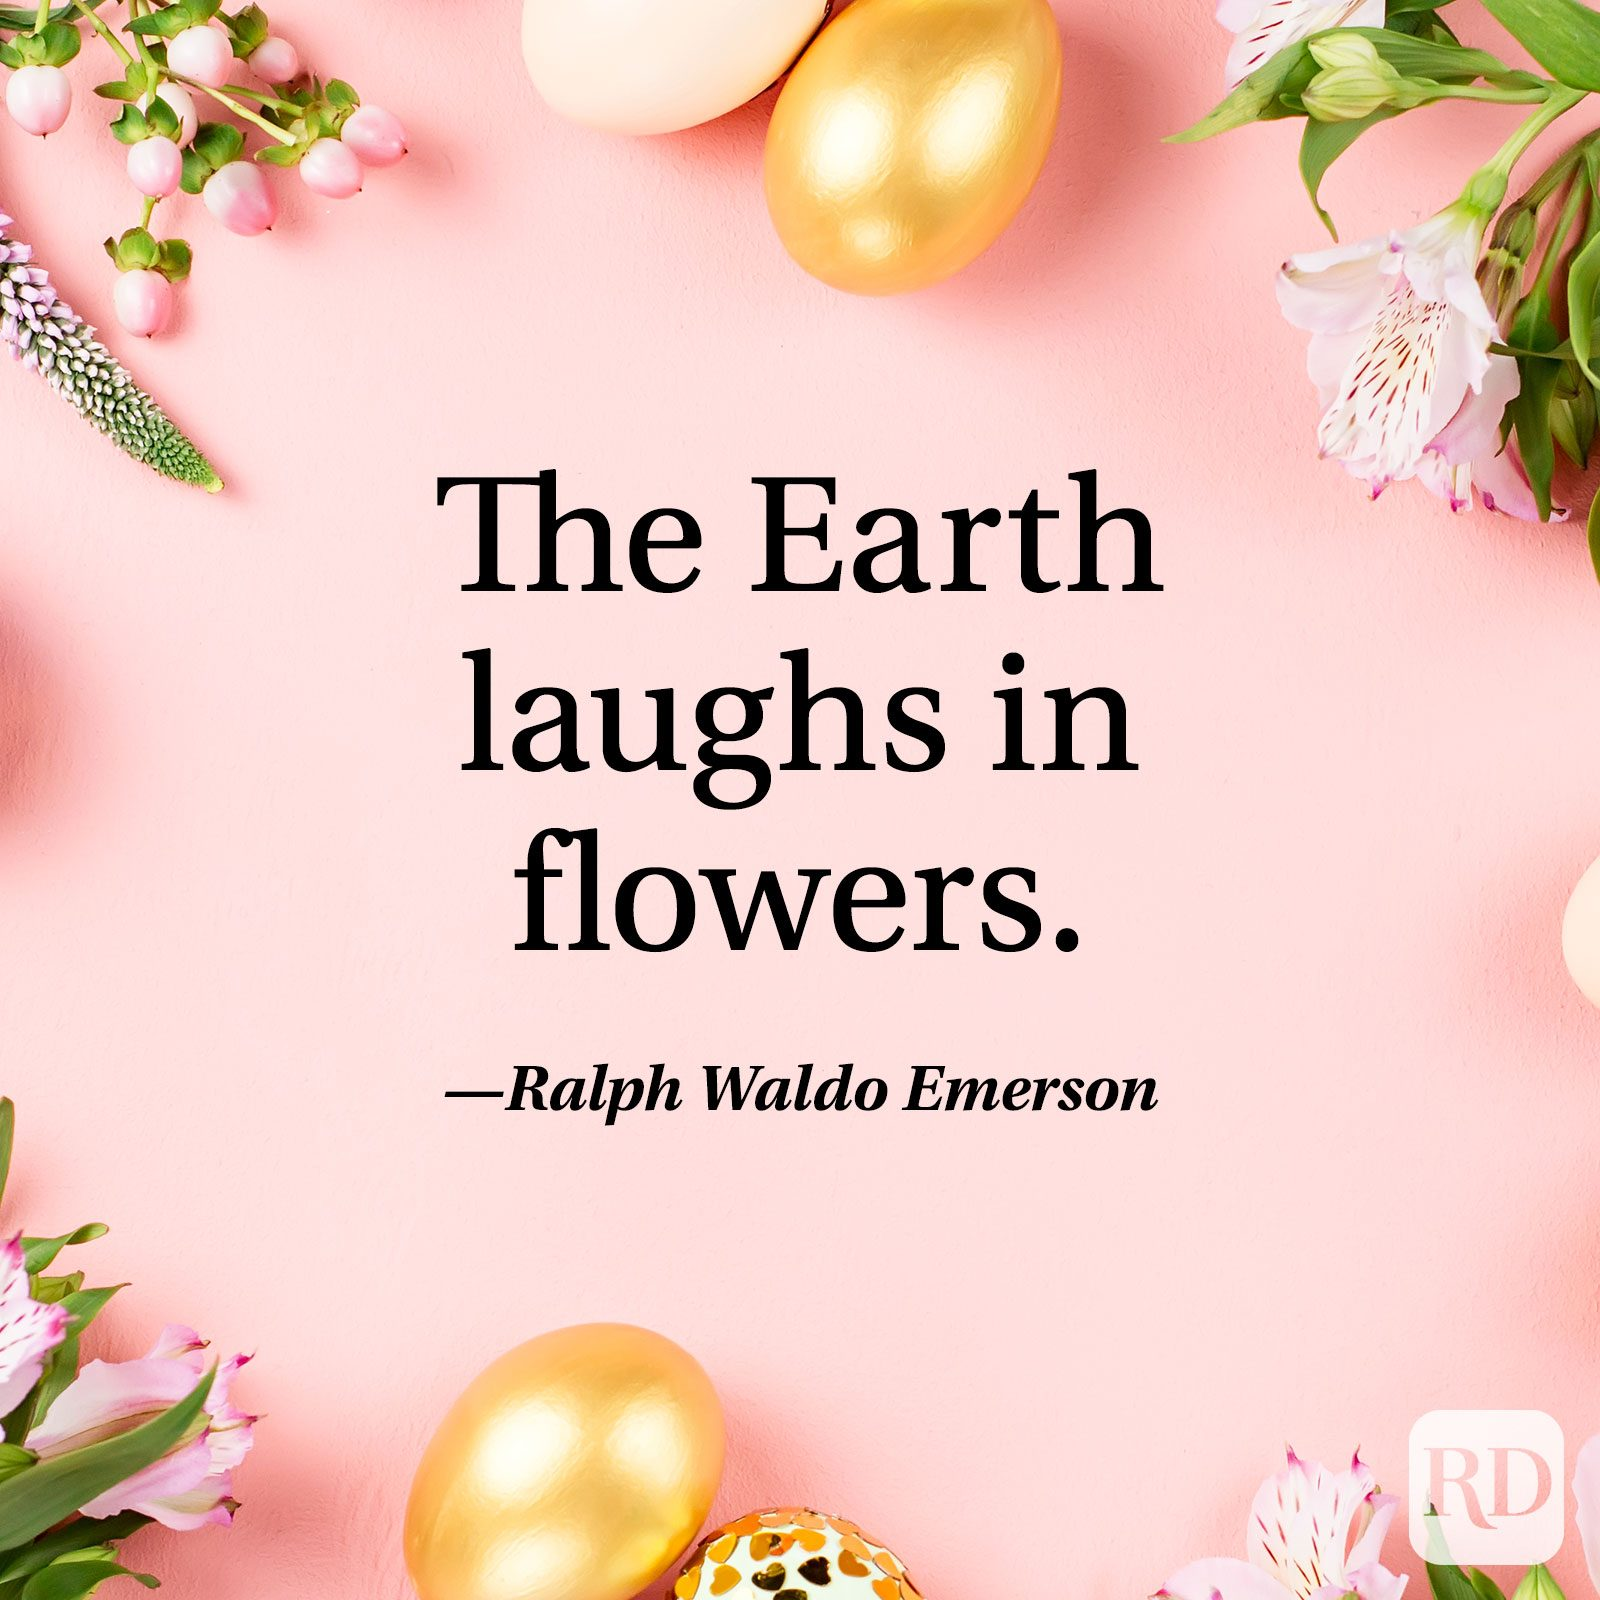 """The Earth laughs in flowers."" — Ralph Waldo Emerson"